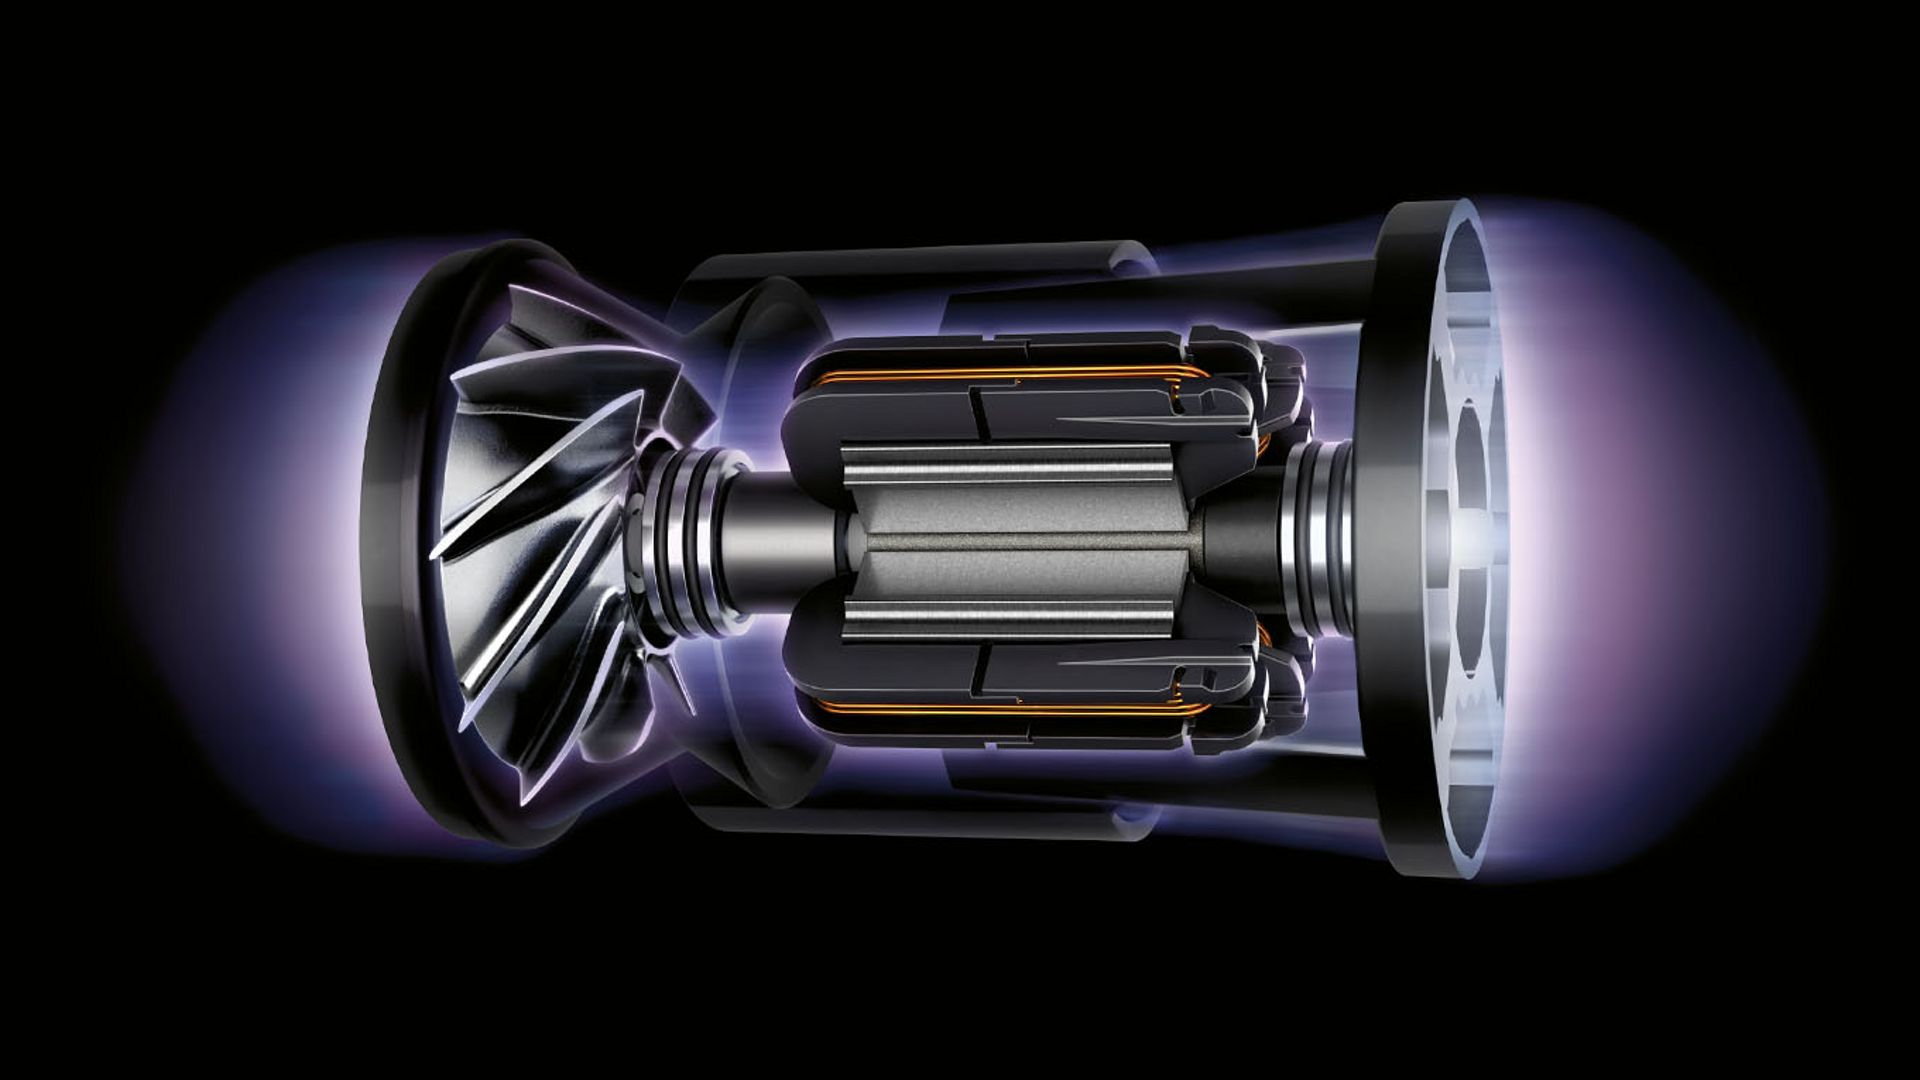 Powered by the Dyson digital motor V10